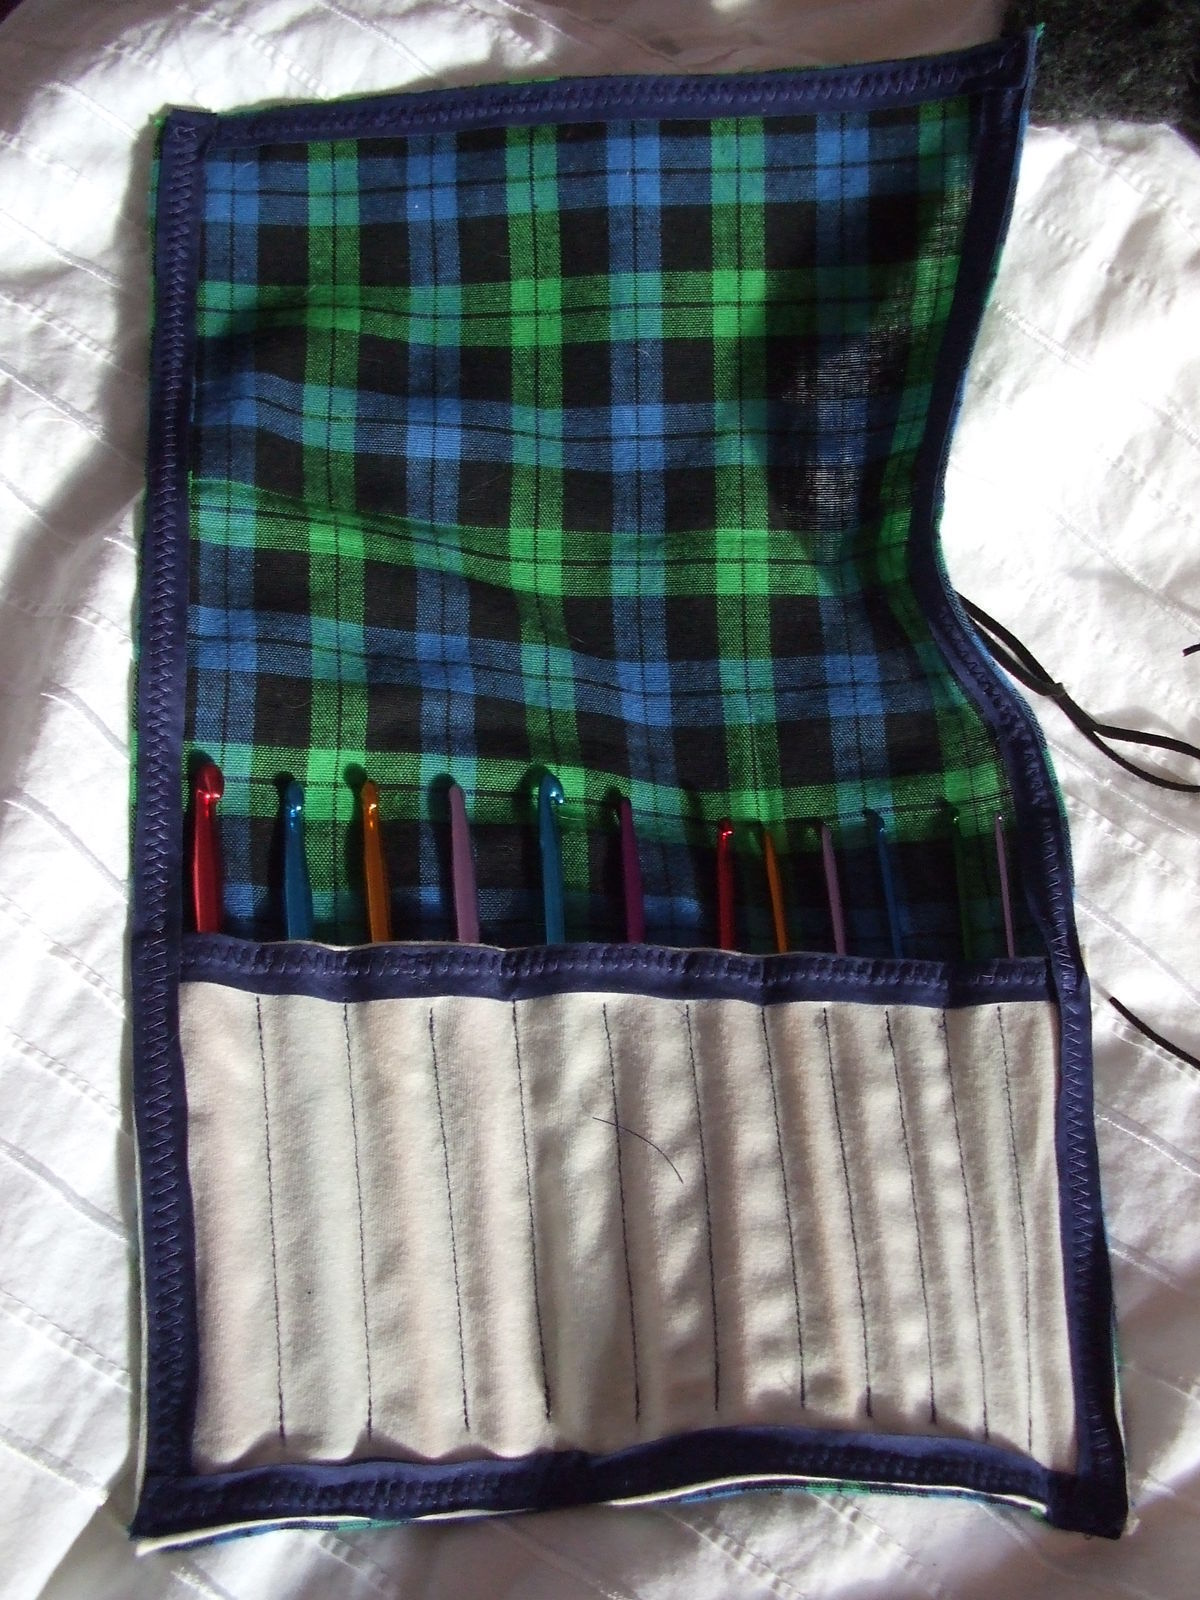 Art Decor Crochet Hook Case · How To Sew A Roll Up Pouch · Sewing On